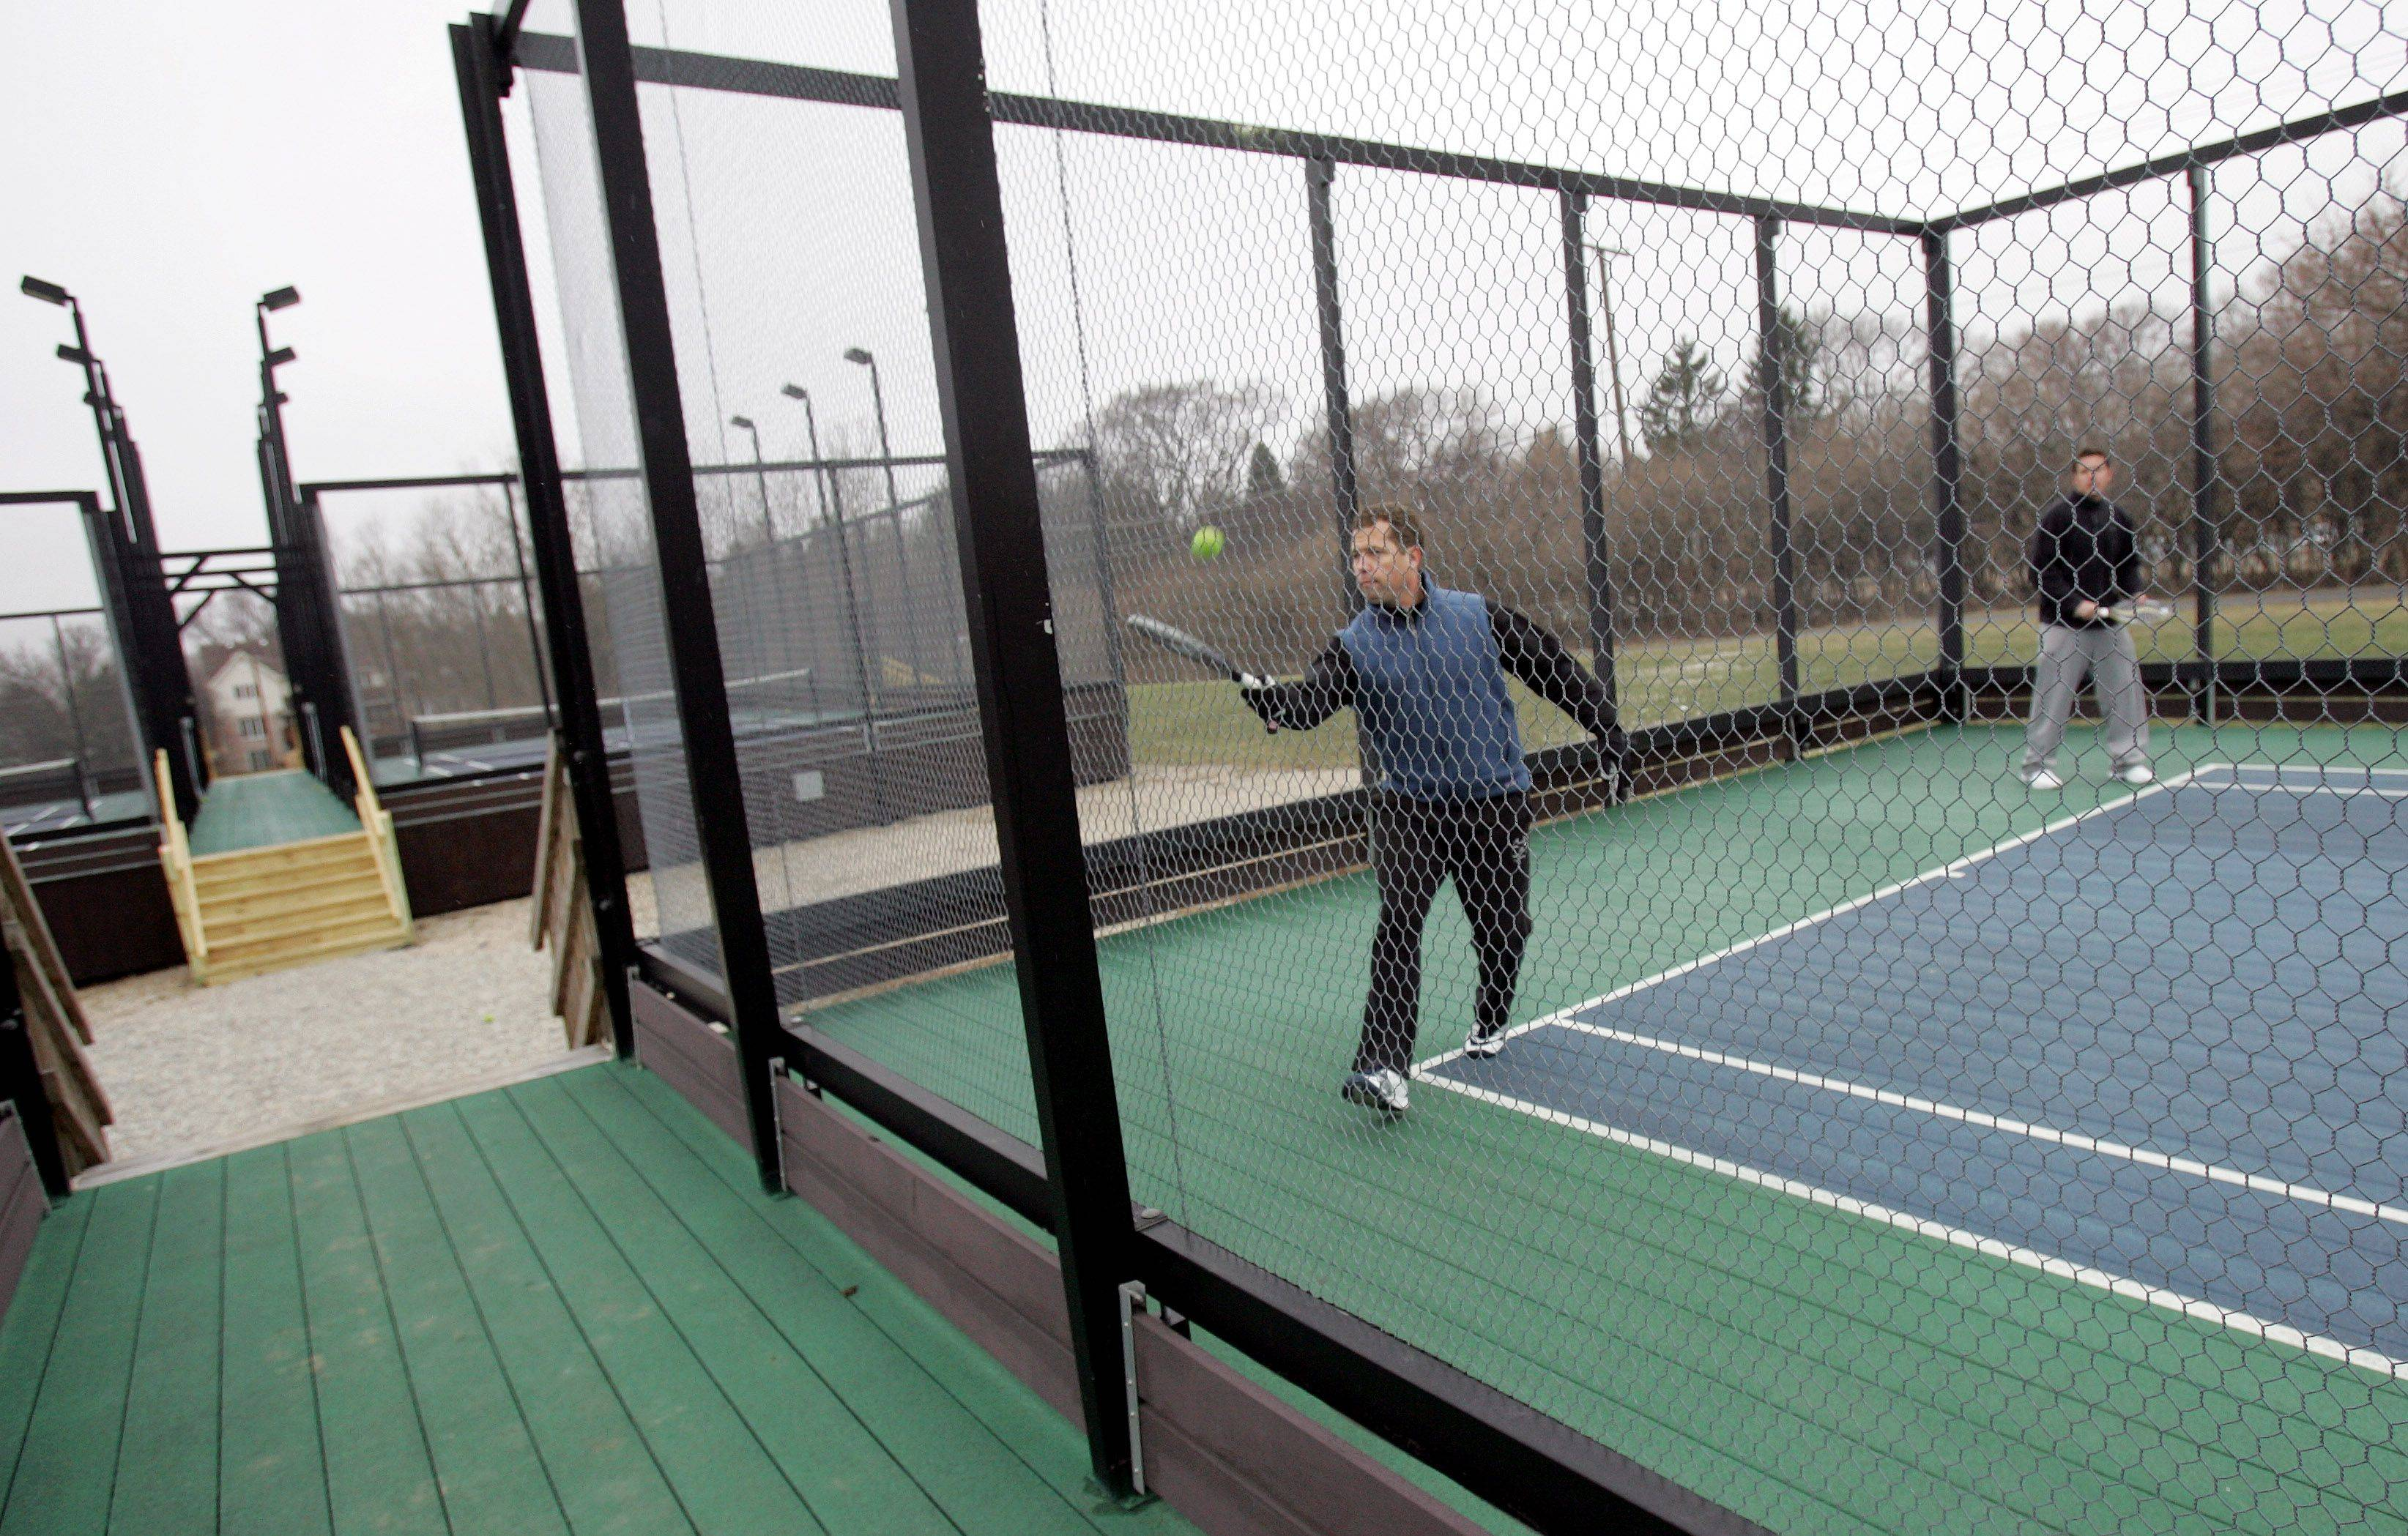 Glen Ellyn Platform Tennis Club players, including Ryan Snyder and Joe Cohn, may get a warming hut soon, which would be built between the four courts.